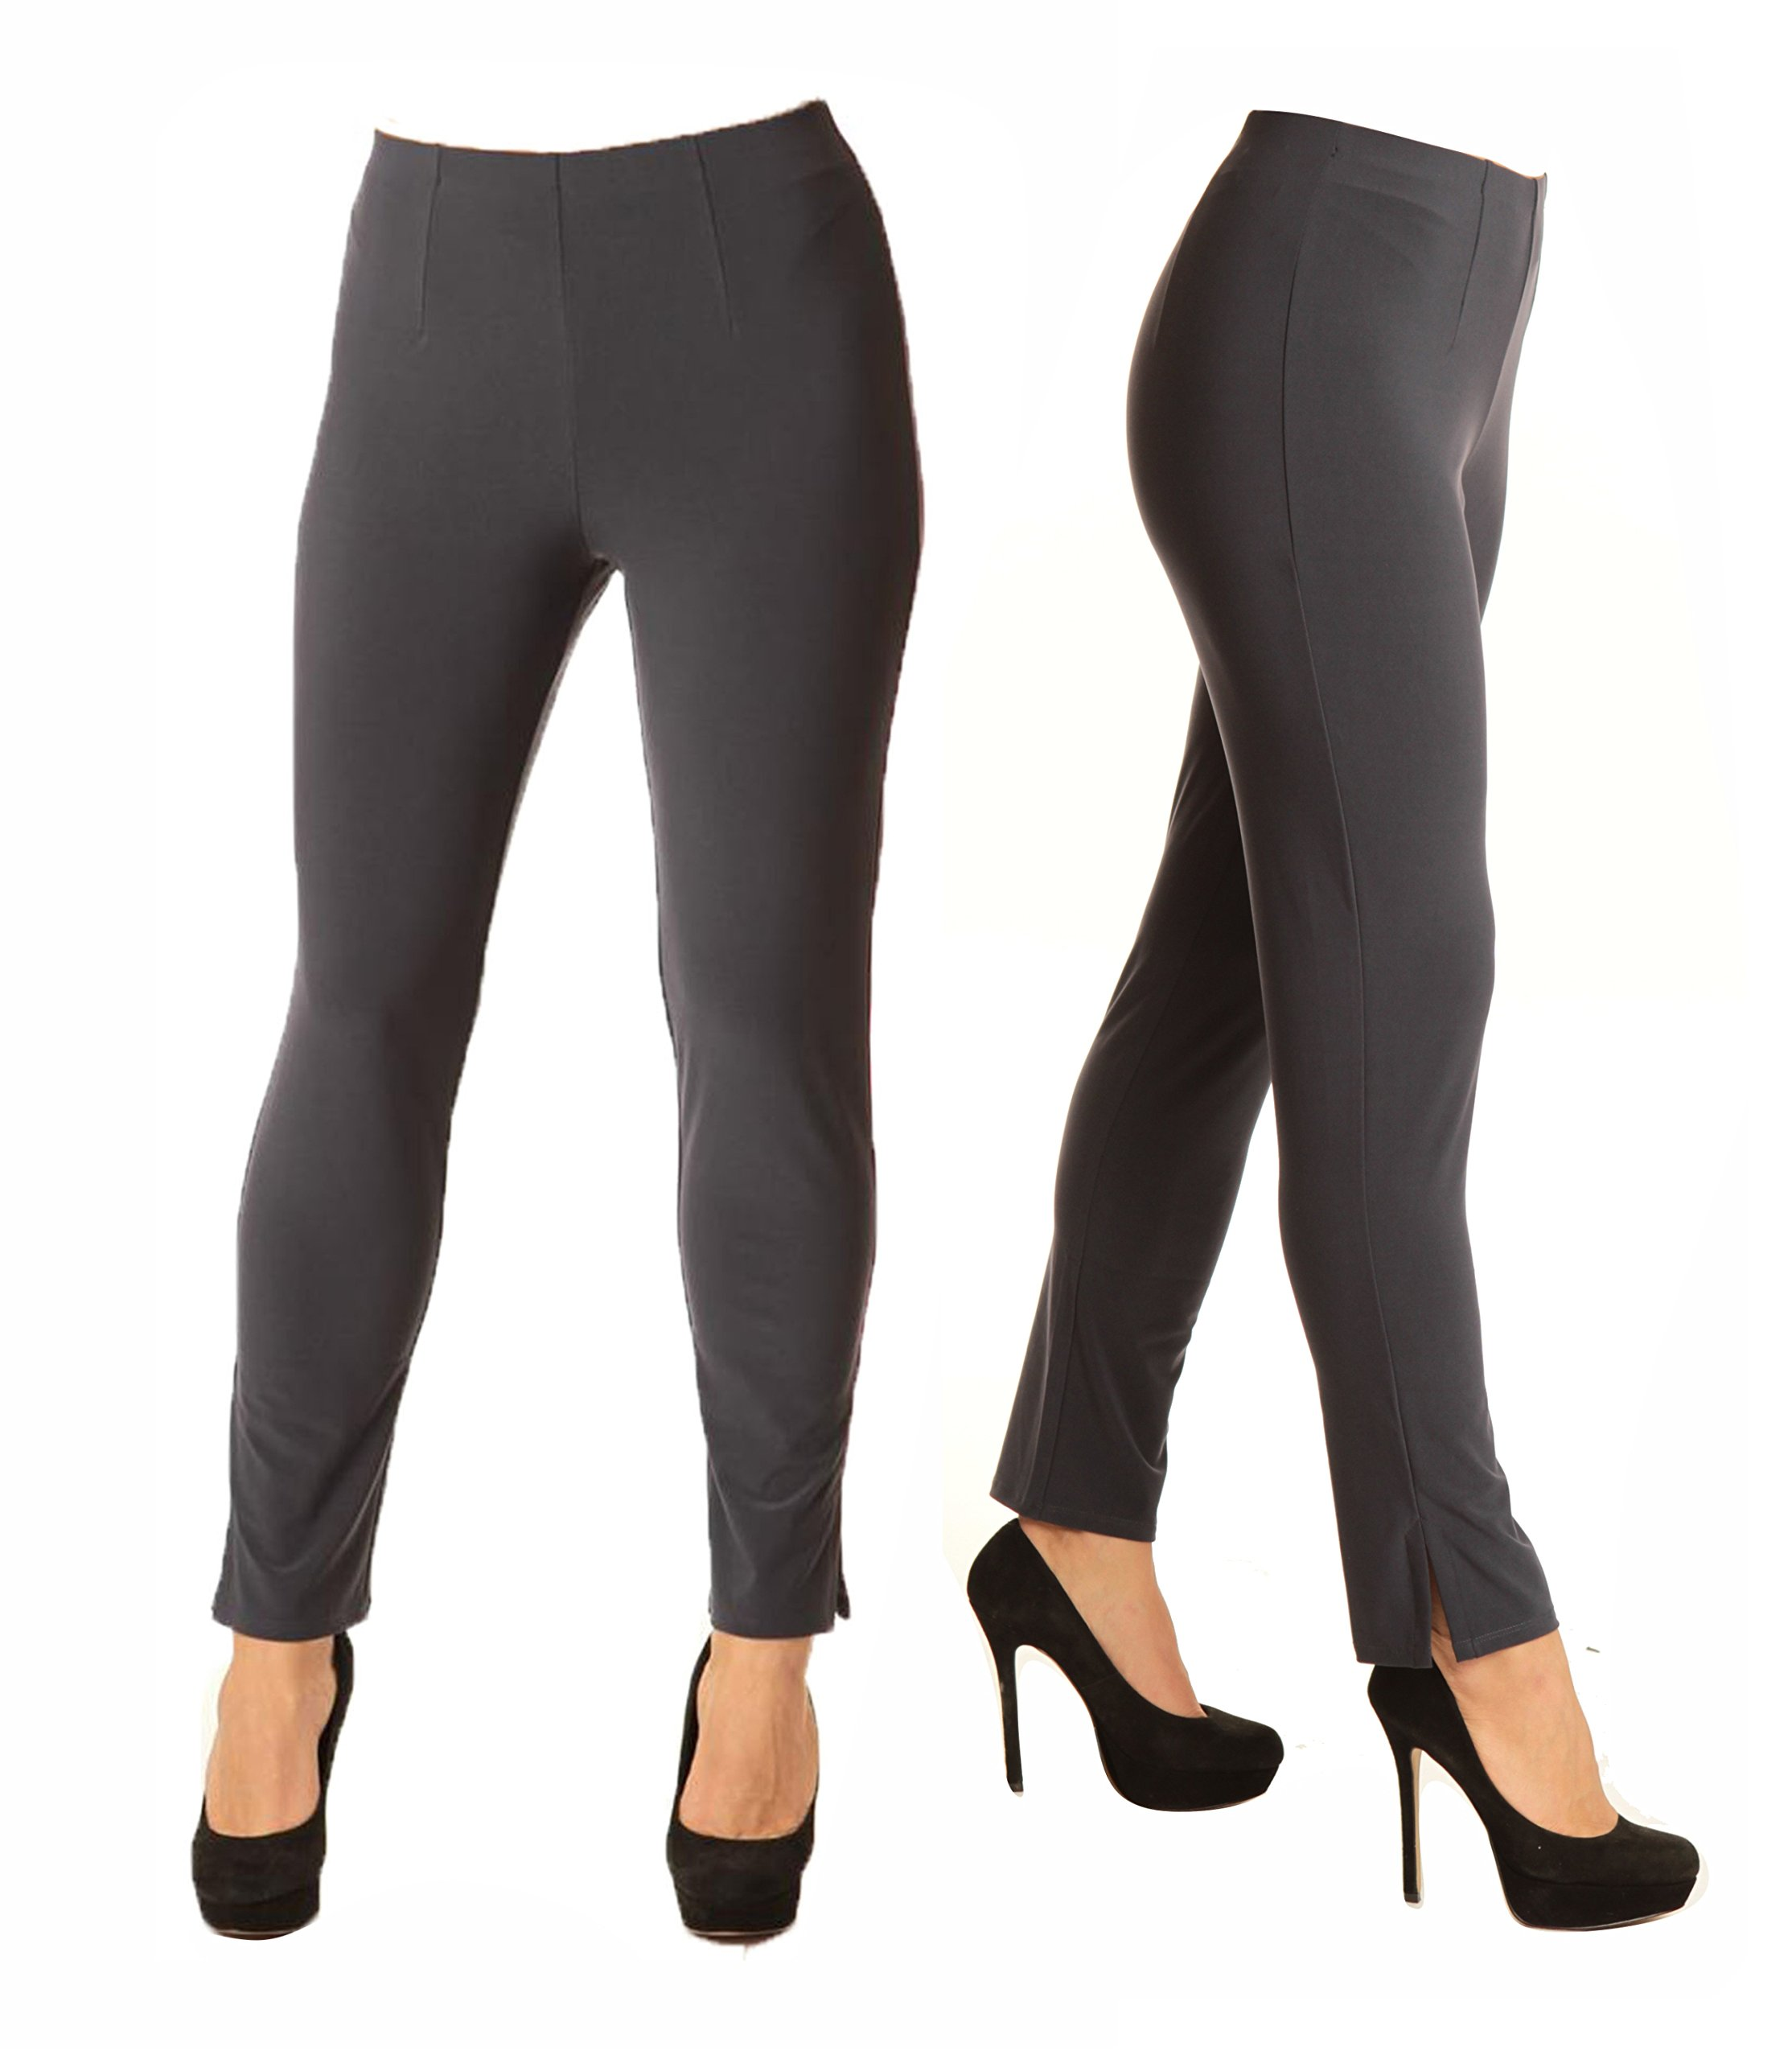 Alisha D Best Selling Travel Wear Pencil Pant Featuring Flat Front, Slimming Darted Fit, and Bottom Slit Detail (Medium,Charcoal)